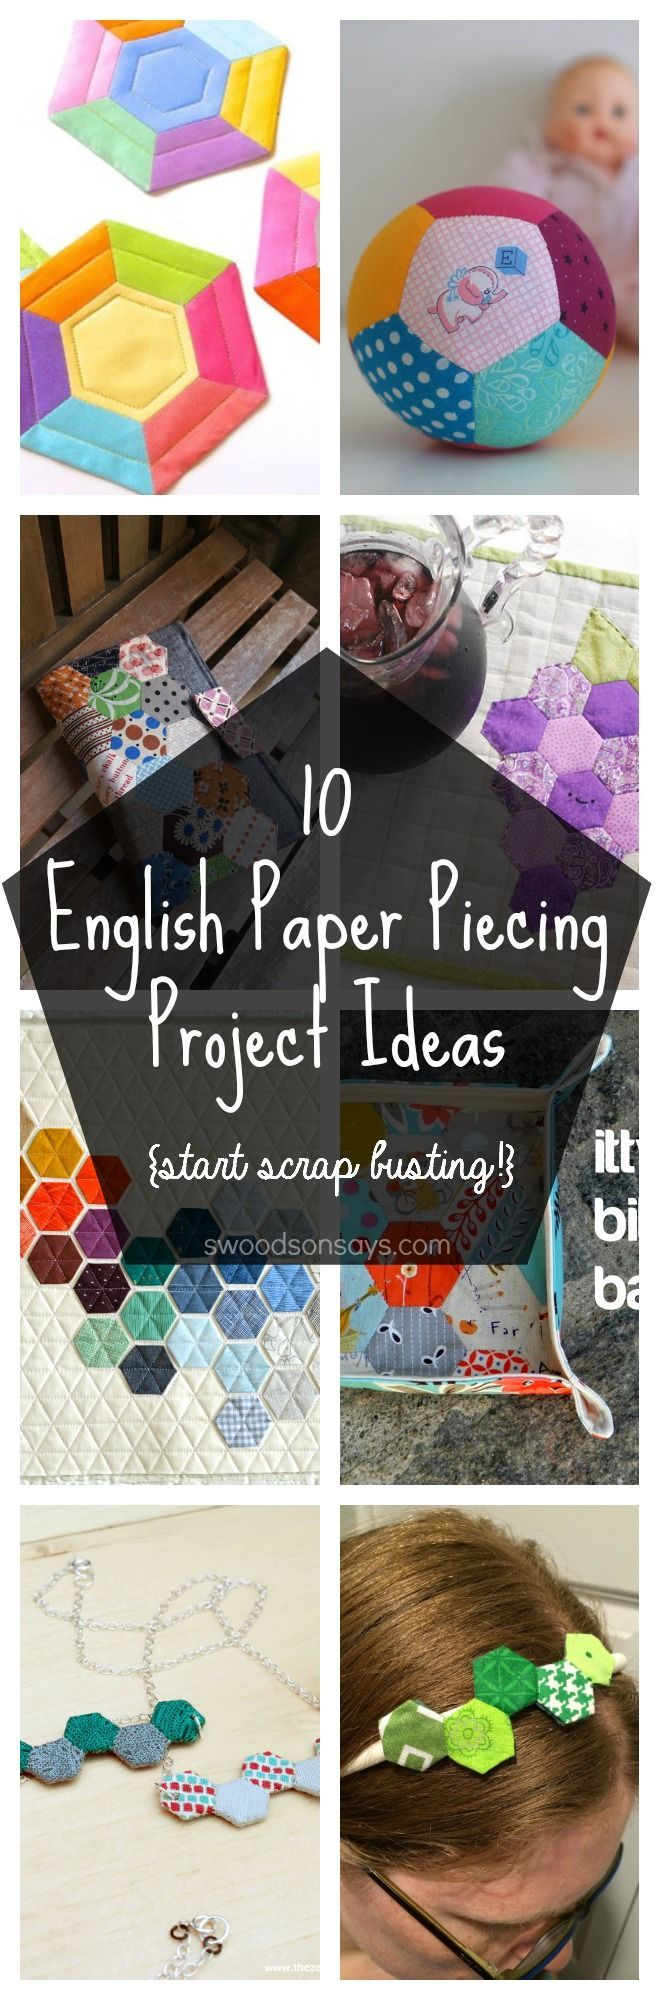 English Paper Piecing Tutorials & Inspiration from Swoodsonsays.com